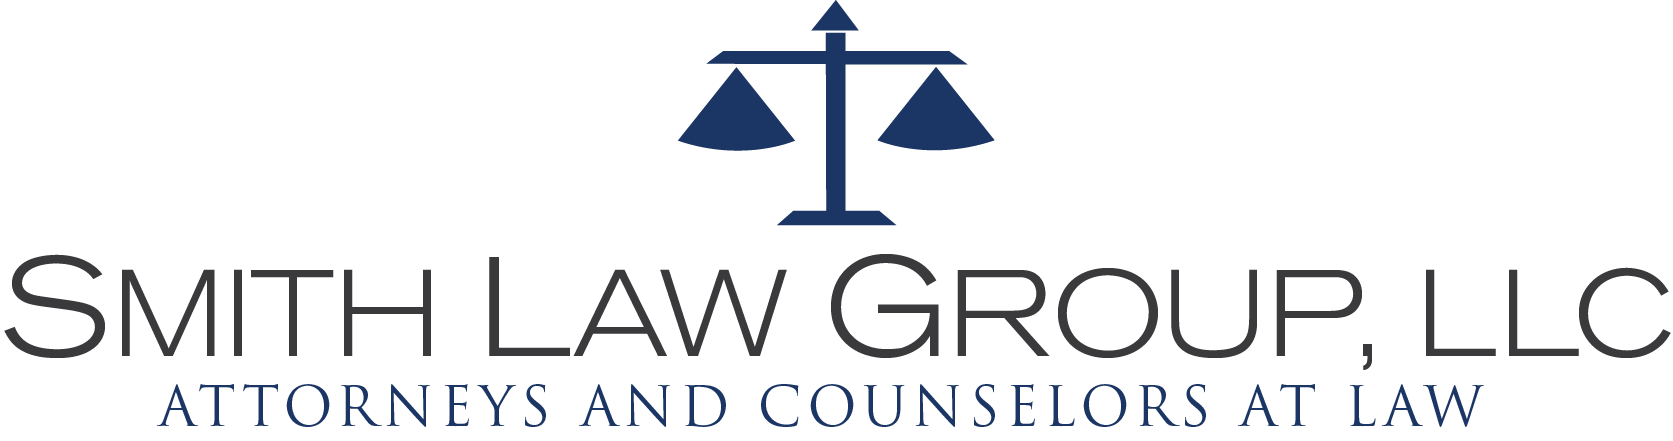 Smith Law Group Logo